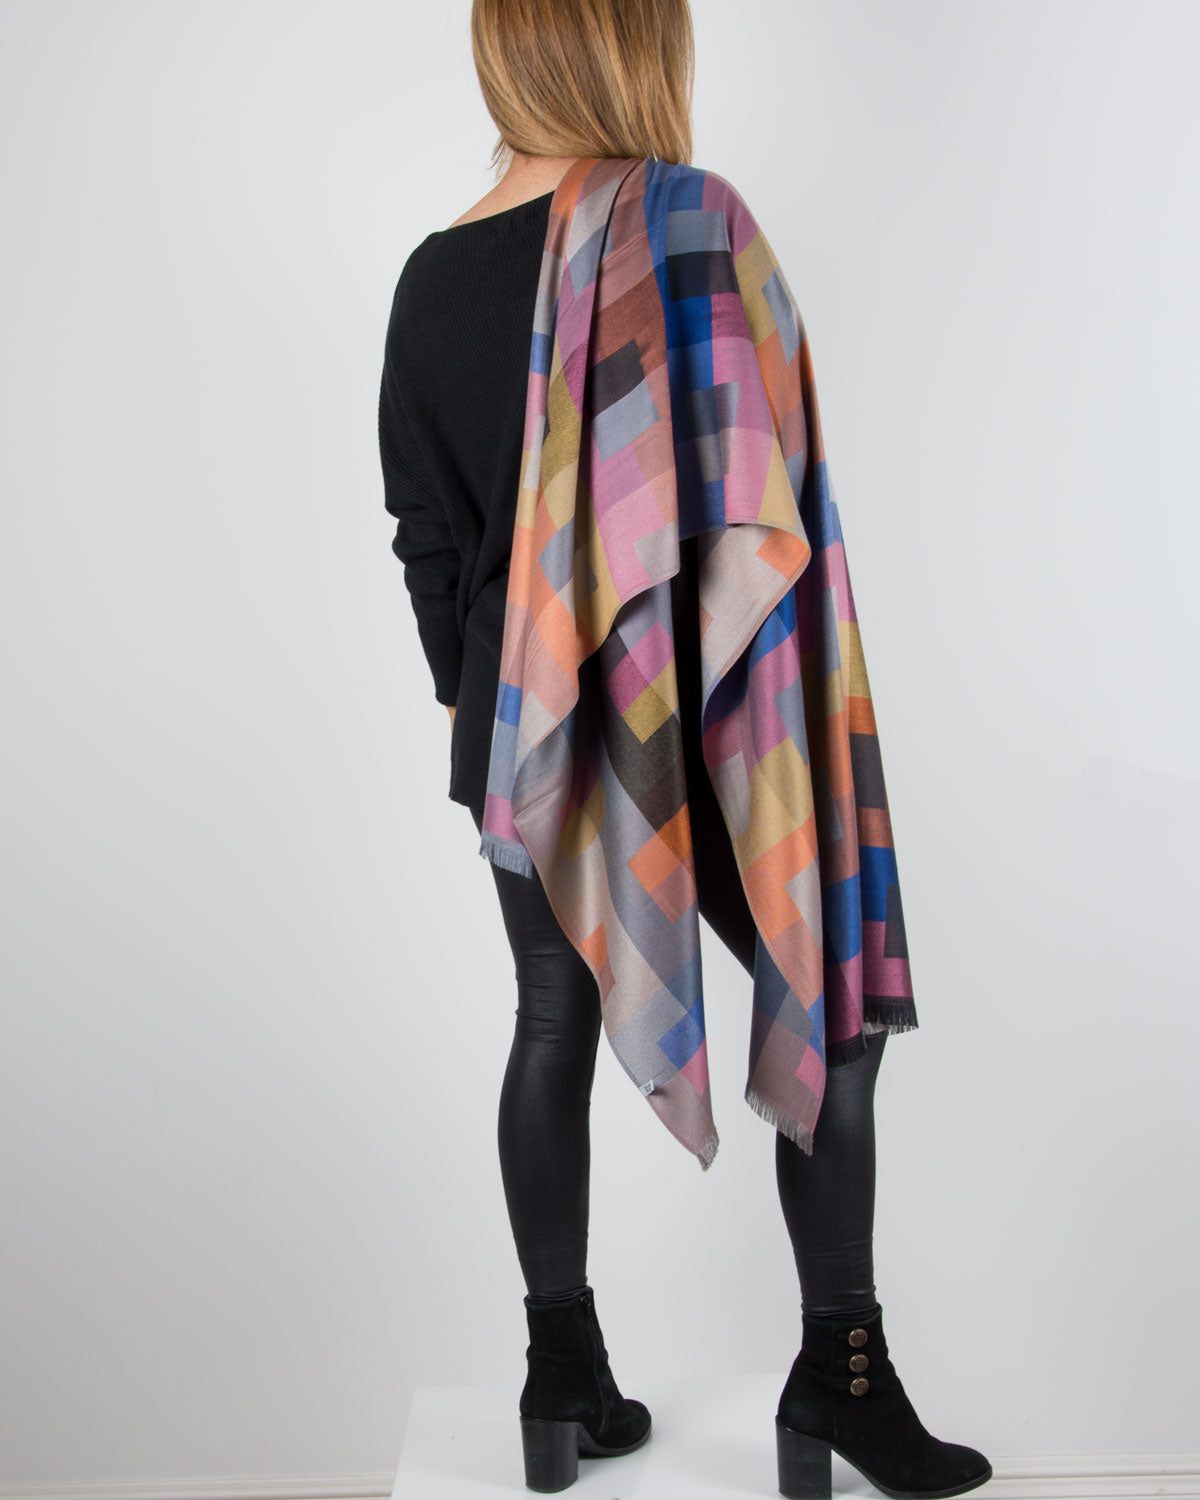 an image showing a geometric print pashmina